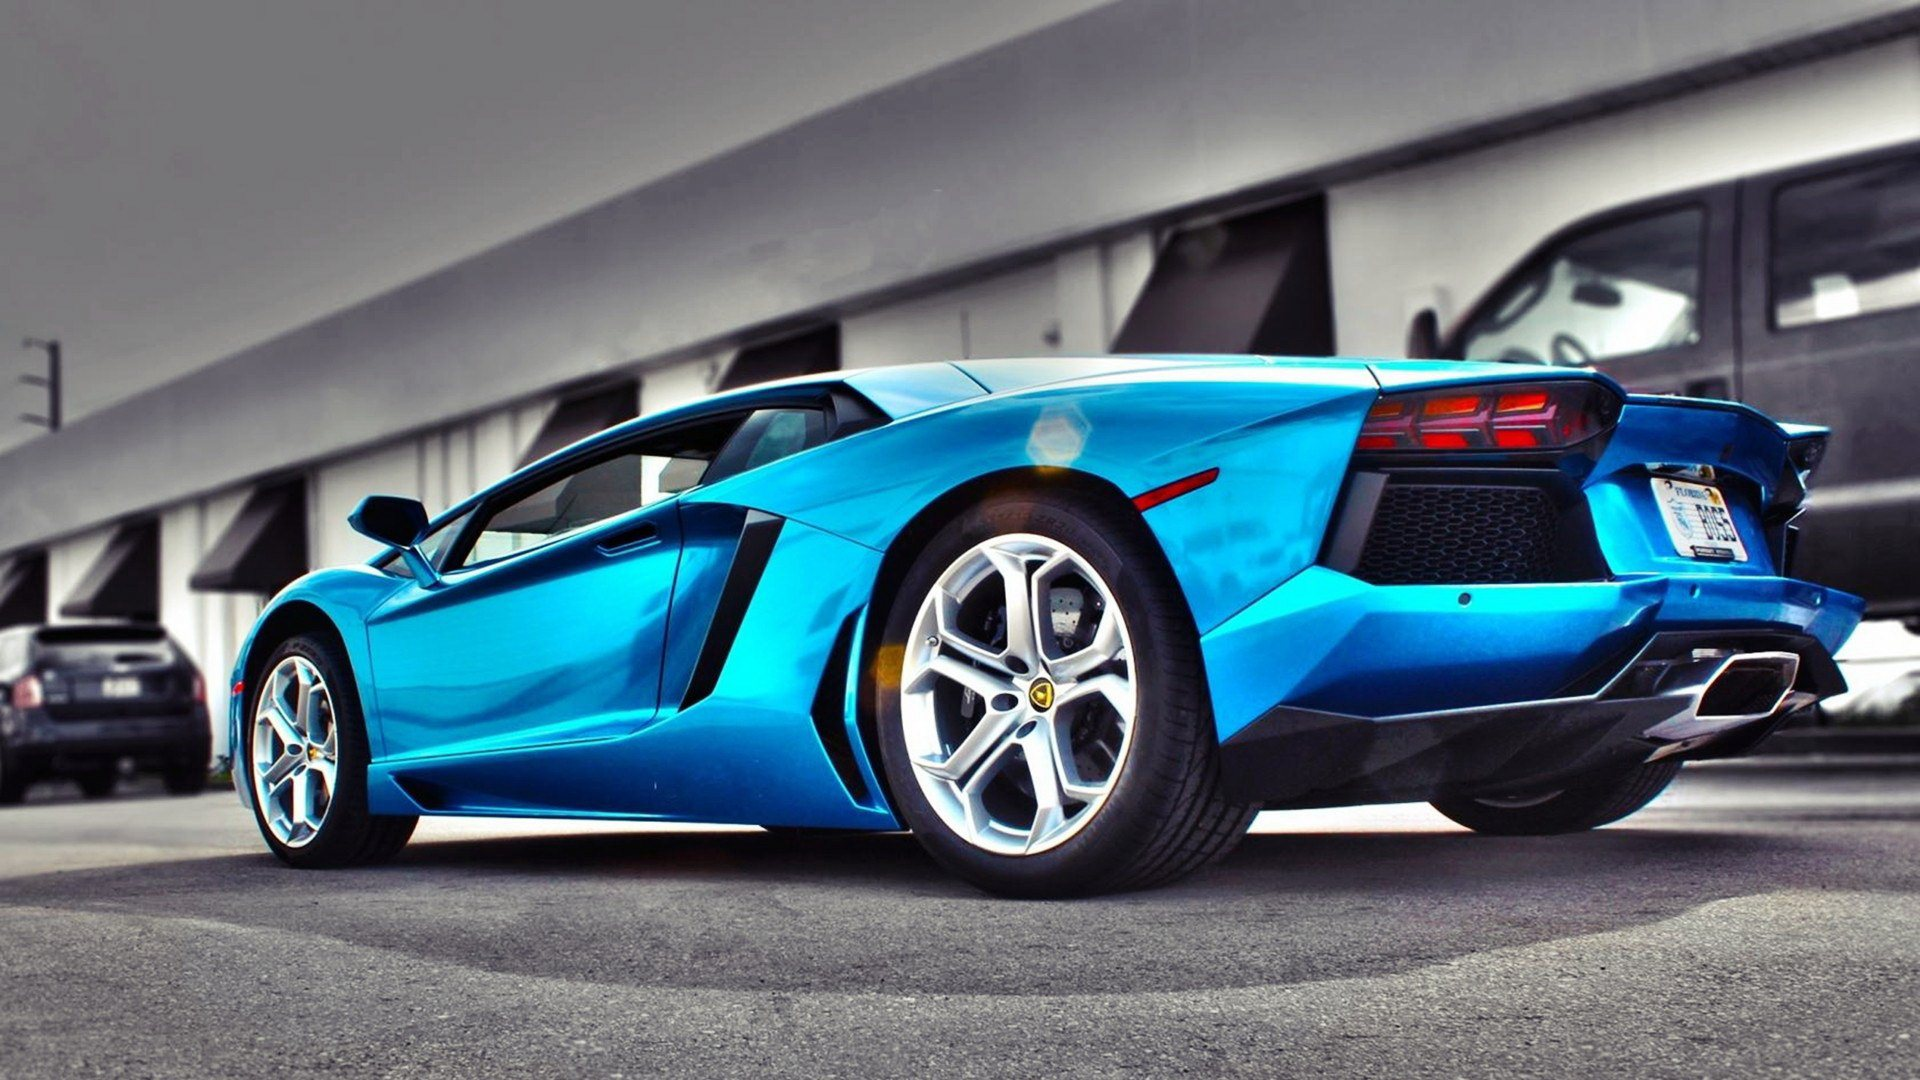 Black And Blue Lamborghini Wallpaper 2 Desktop Background